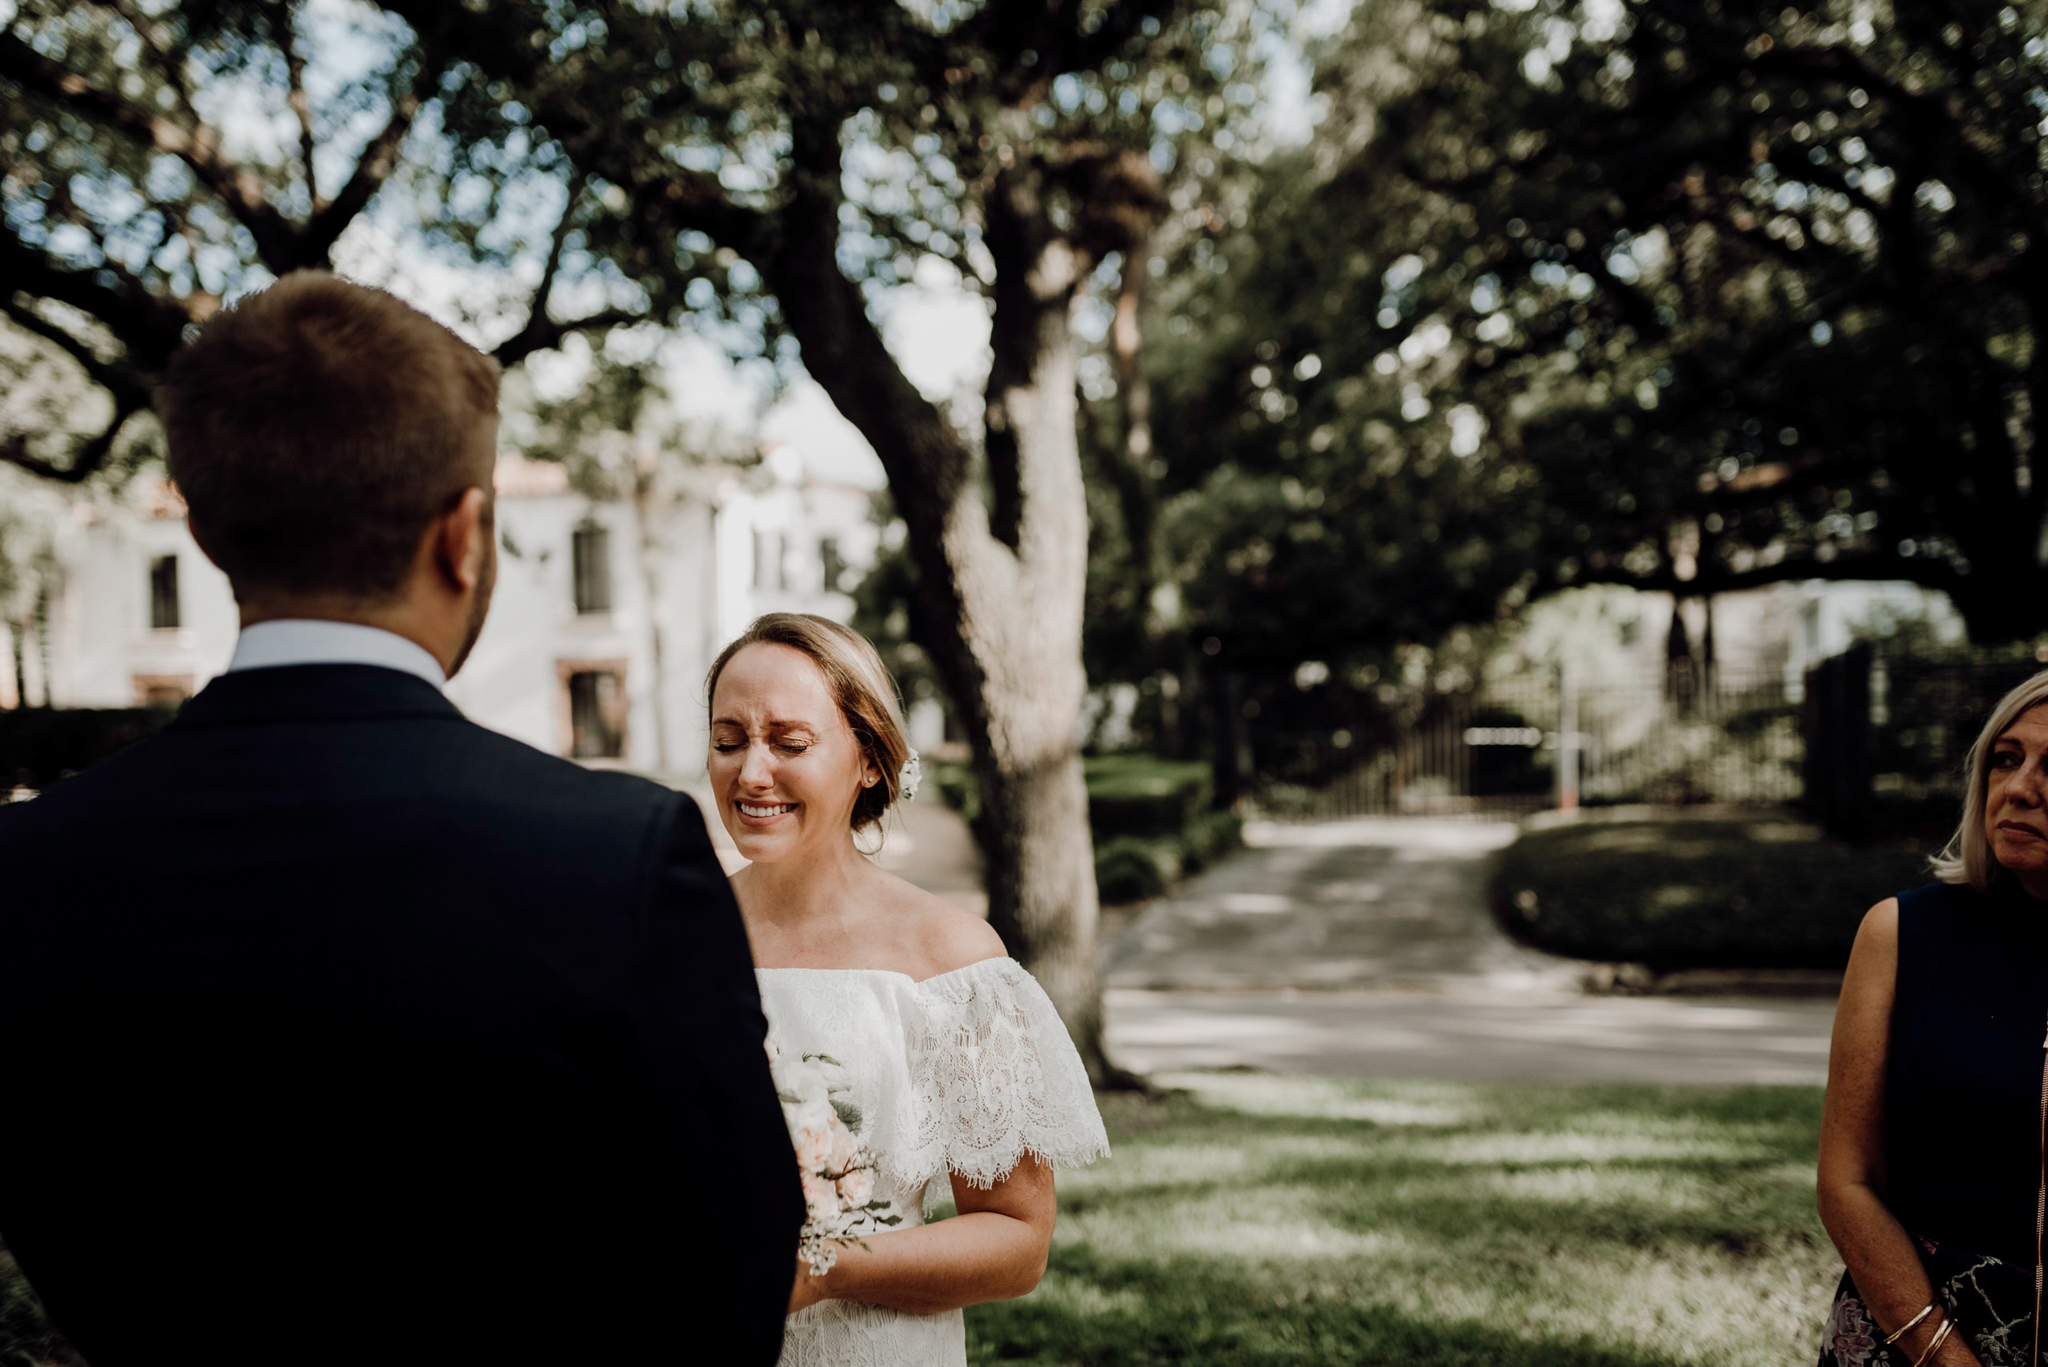 Houston Wedding Photographer-North Blvd Intimate Elopement- Houston Wedding Photographer -Kristen Giles Photography-8.jpg